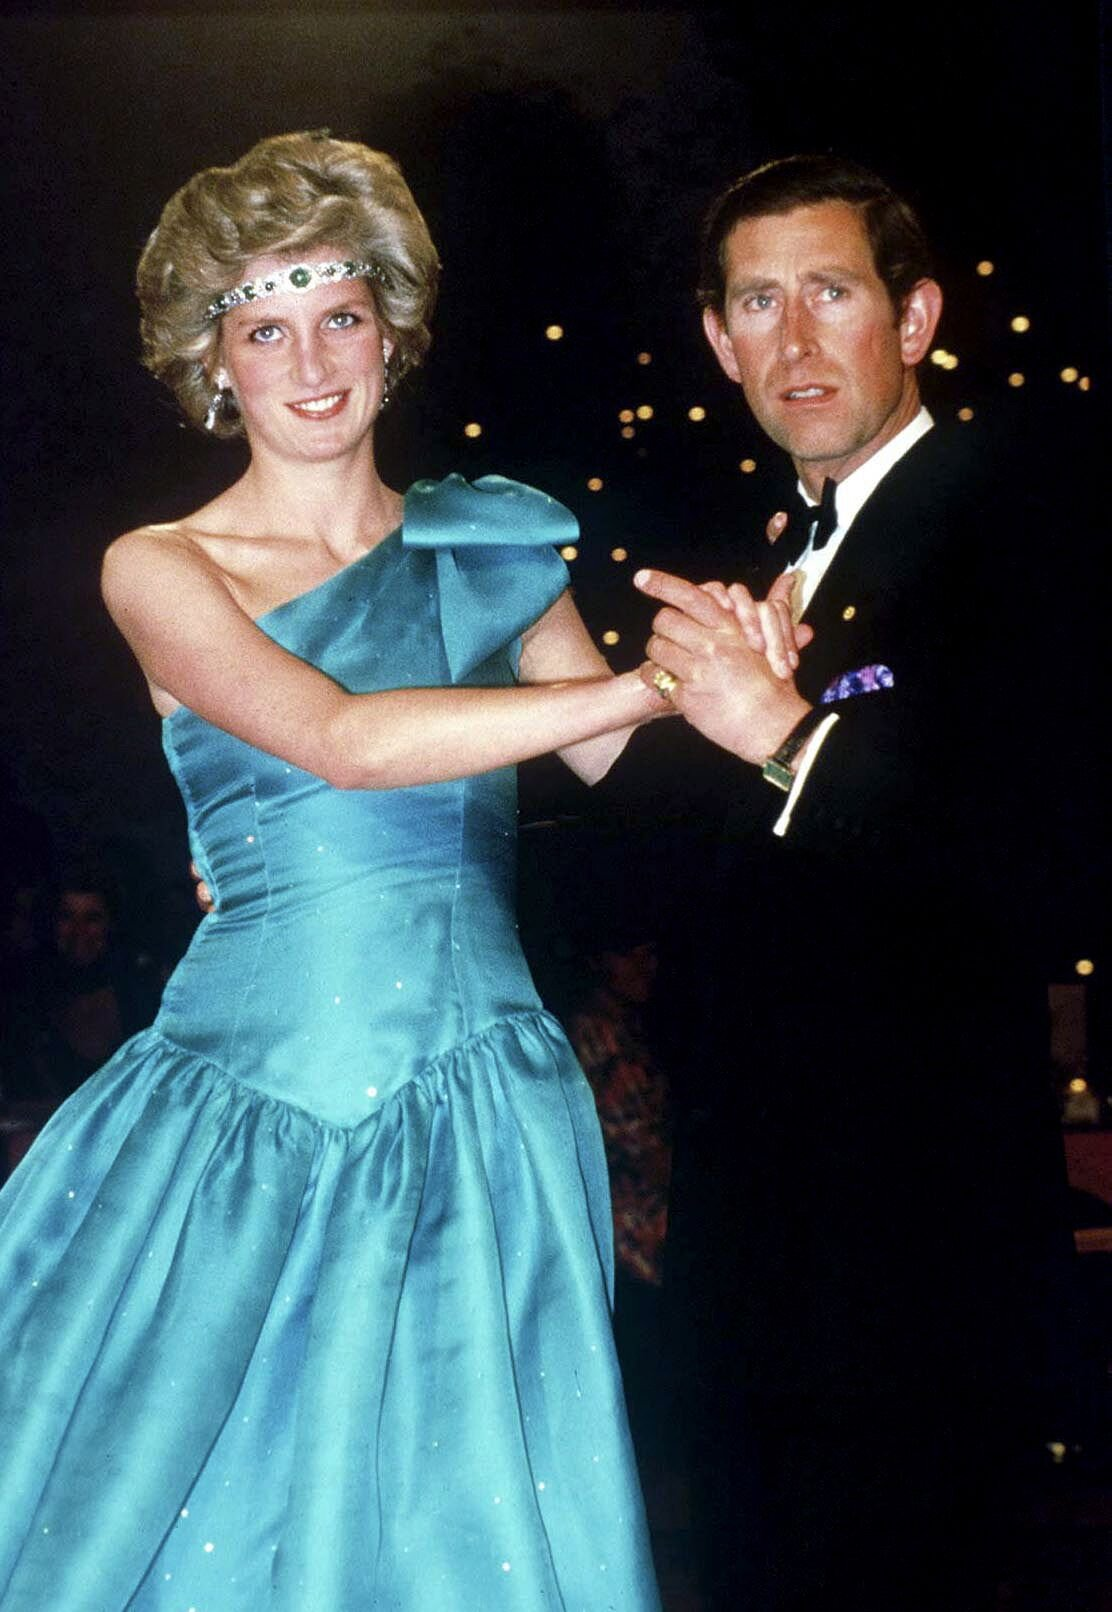 Prince Charles Dancing With His Wife, Princess Diana, in Melbourne. | Source: Getty Images